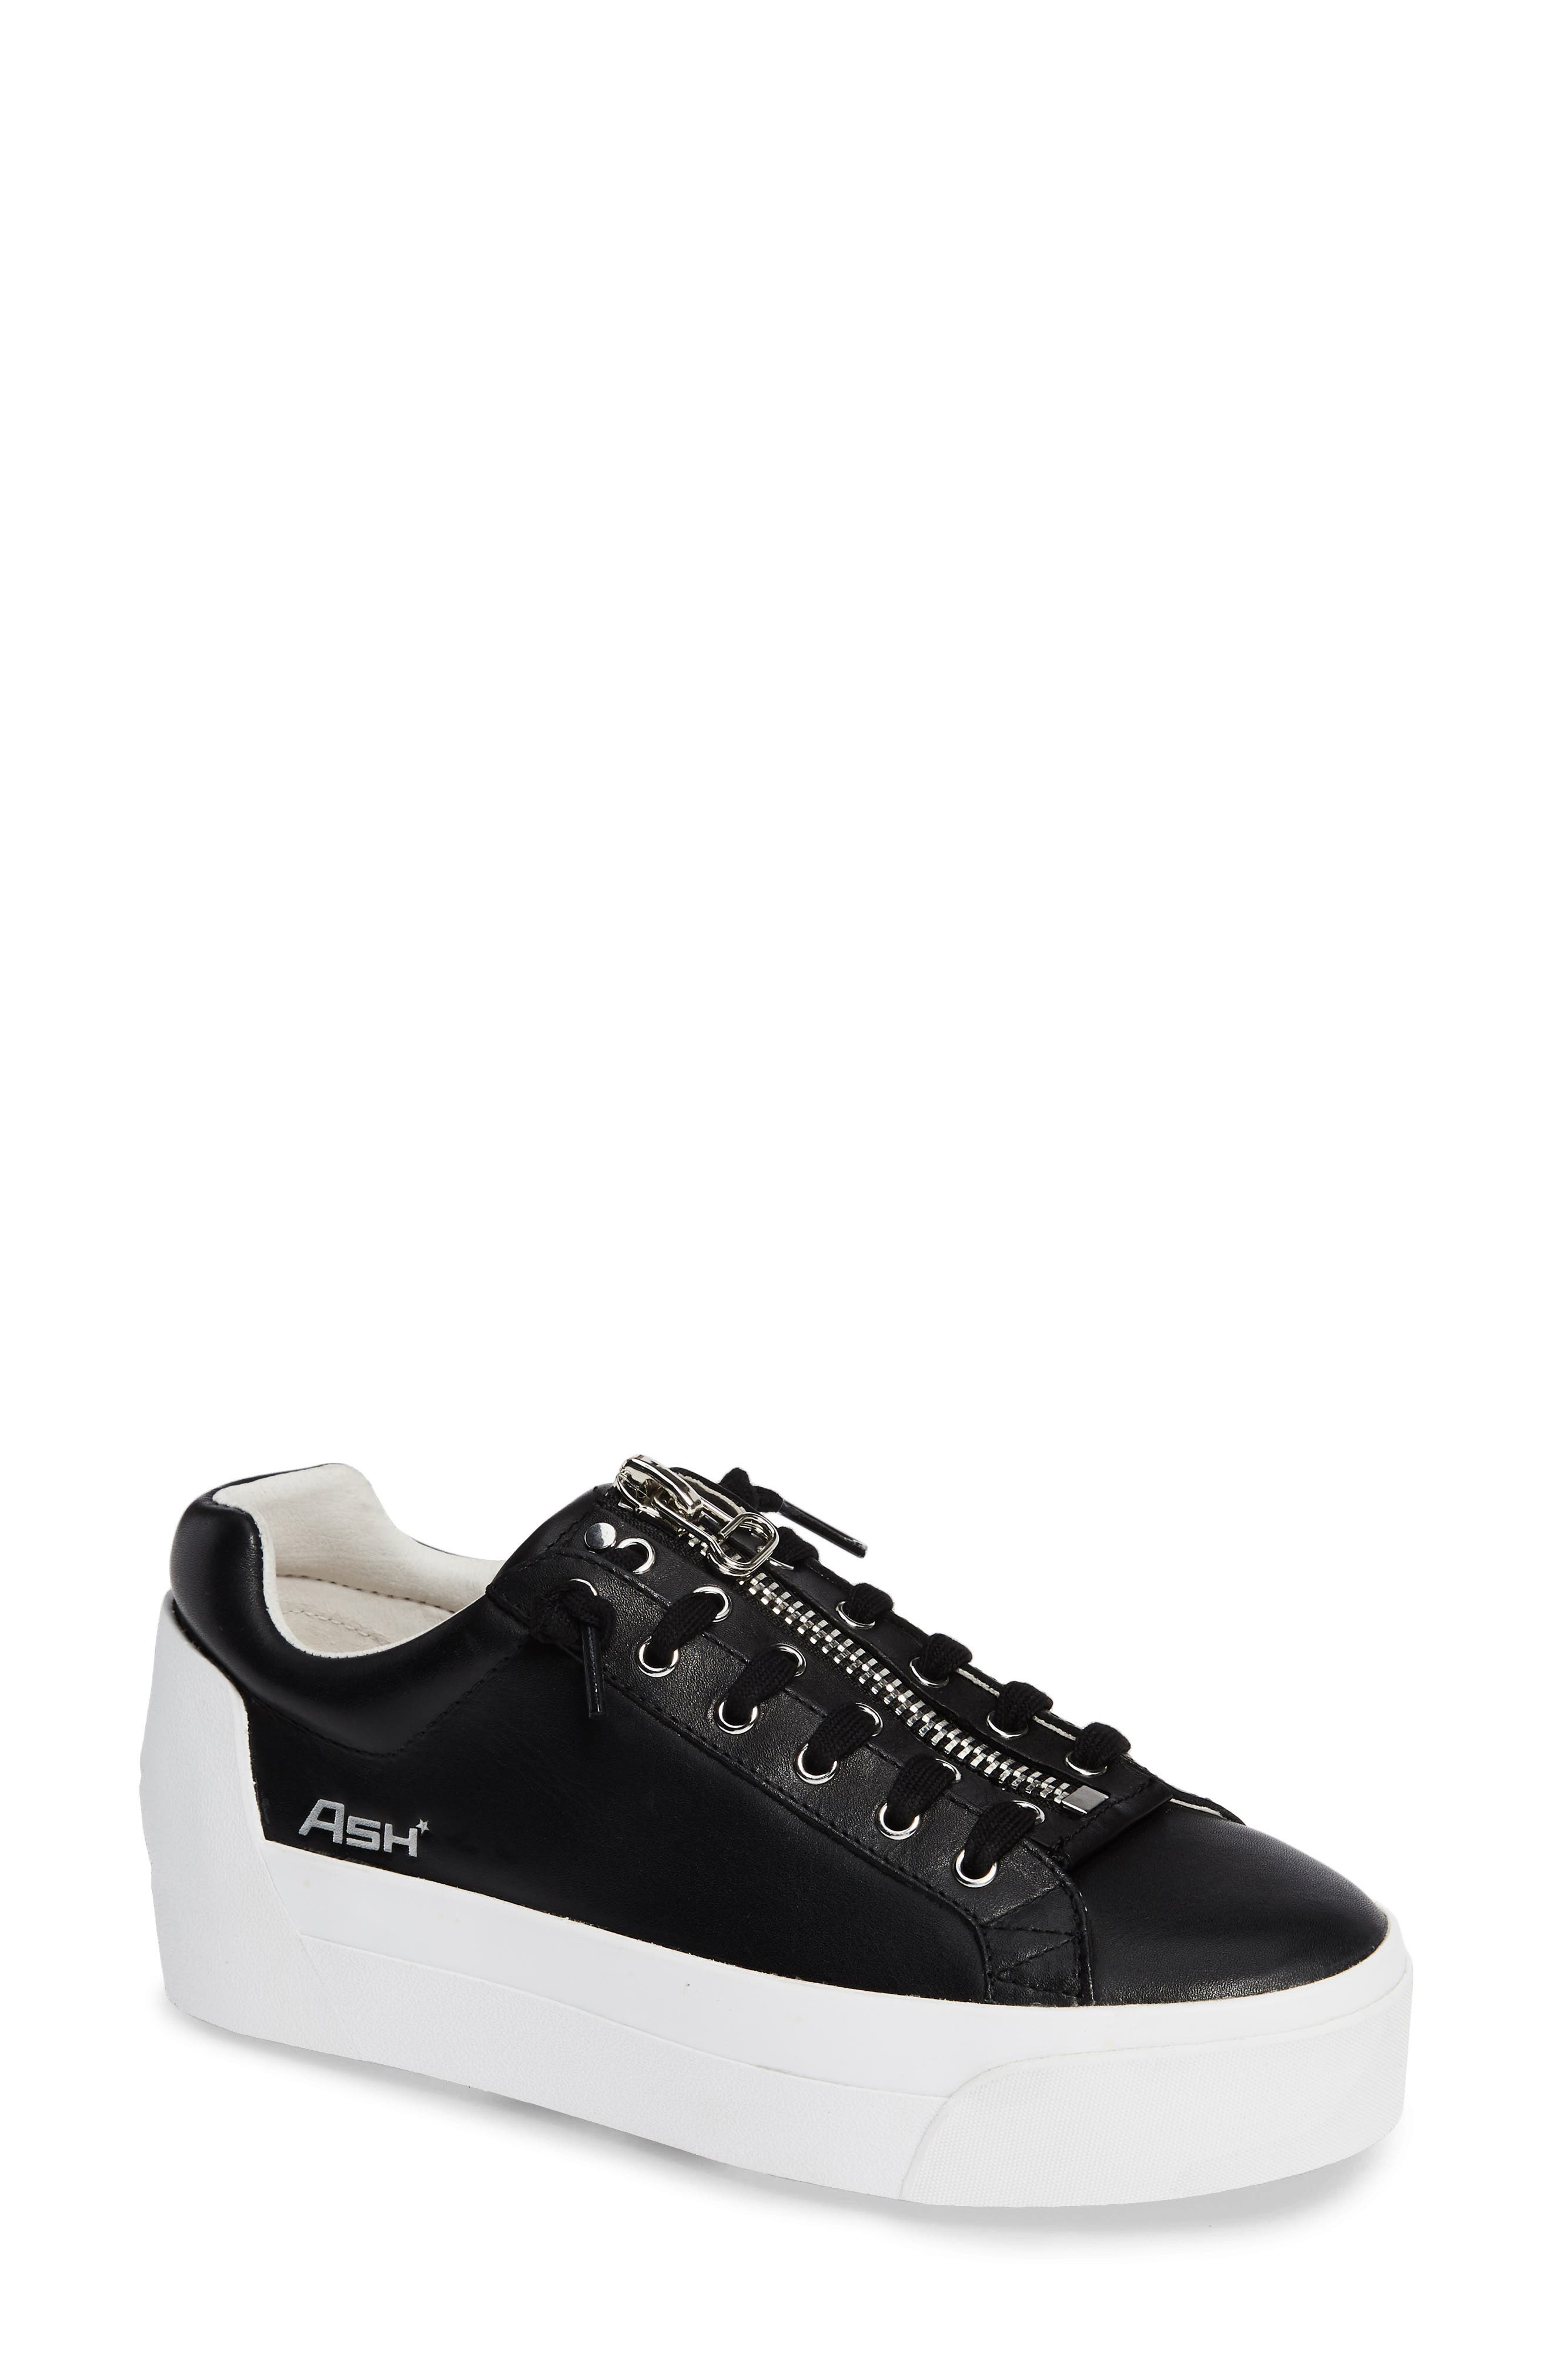 Buzz Leather Flatform Creepers in Black/ Black